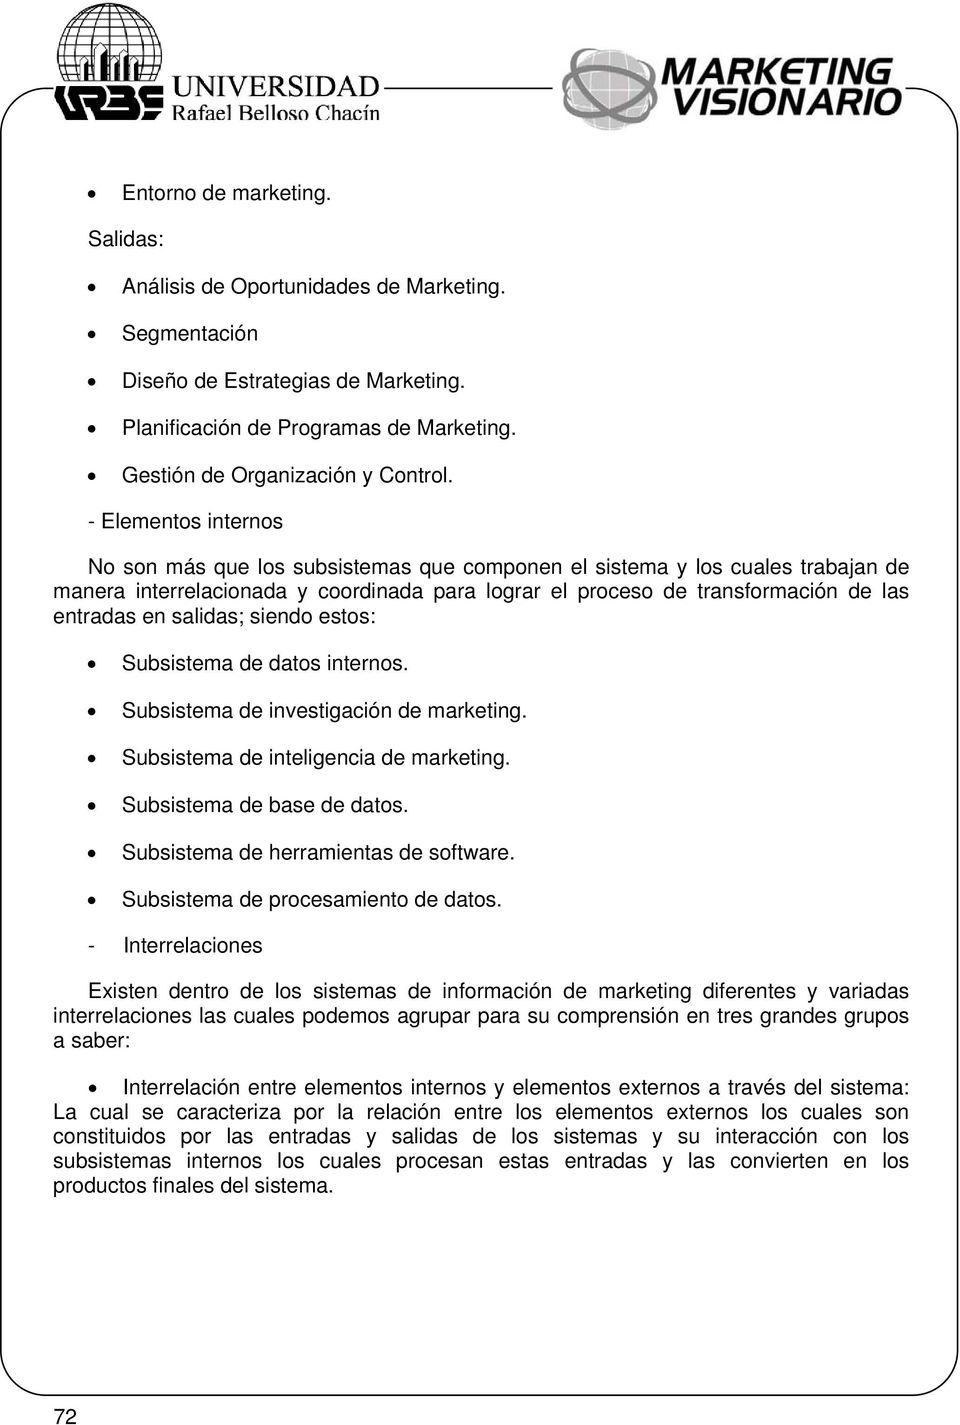 salidas; siendo estos: Subsistema de datos internos. Subsistema de investigación de marketing. Subsistema de inteligencia de marketing. Subsistema de base de datos.